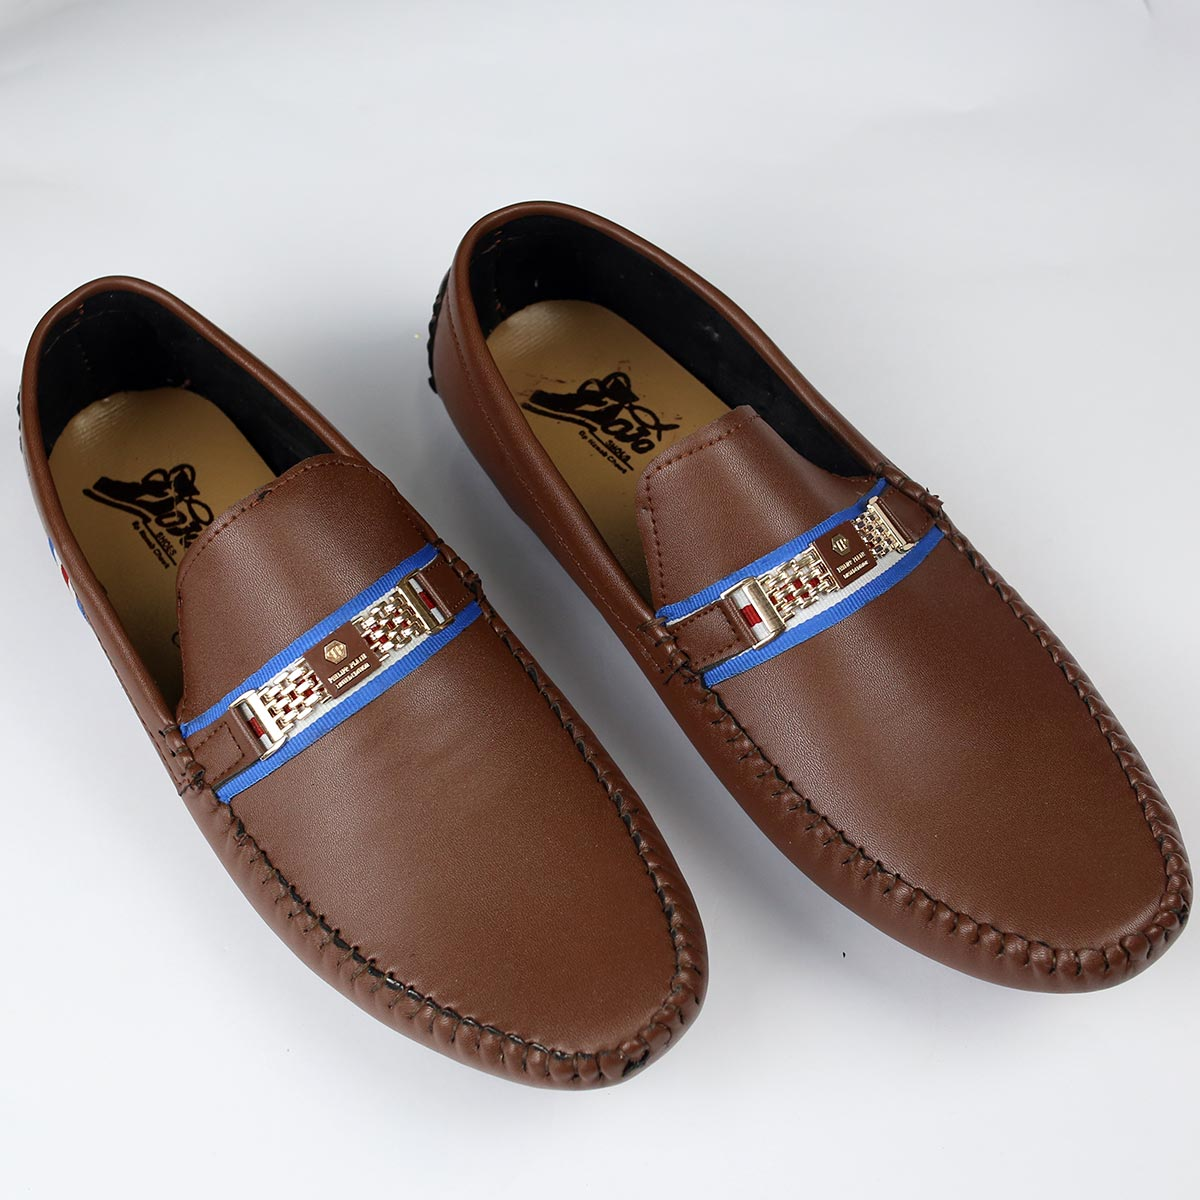 Brown Mens Casual Loafers Shoes (Size 7 to 10) (41 to 44)  (MS-12) Gallery Image 1